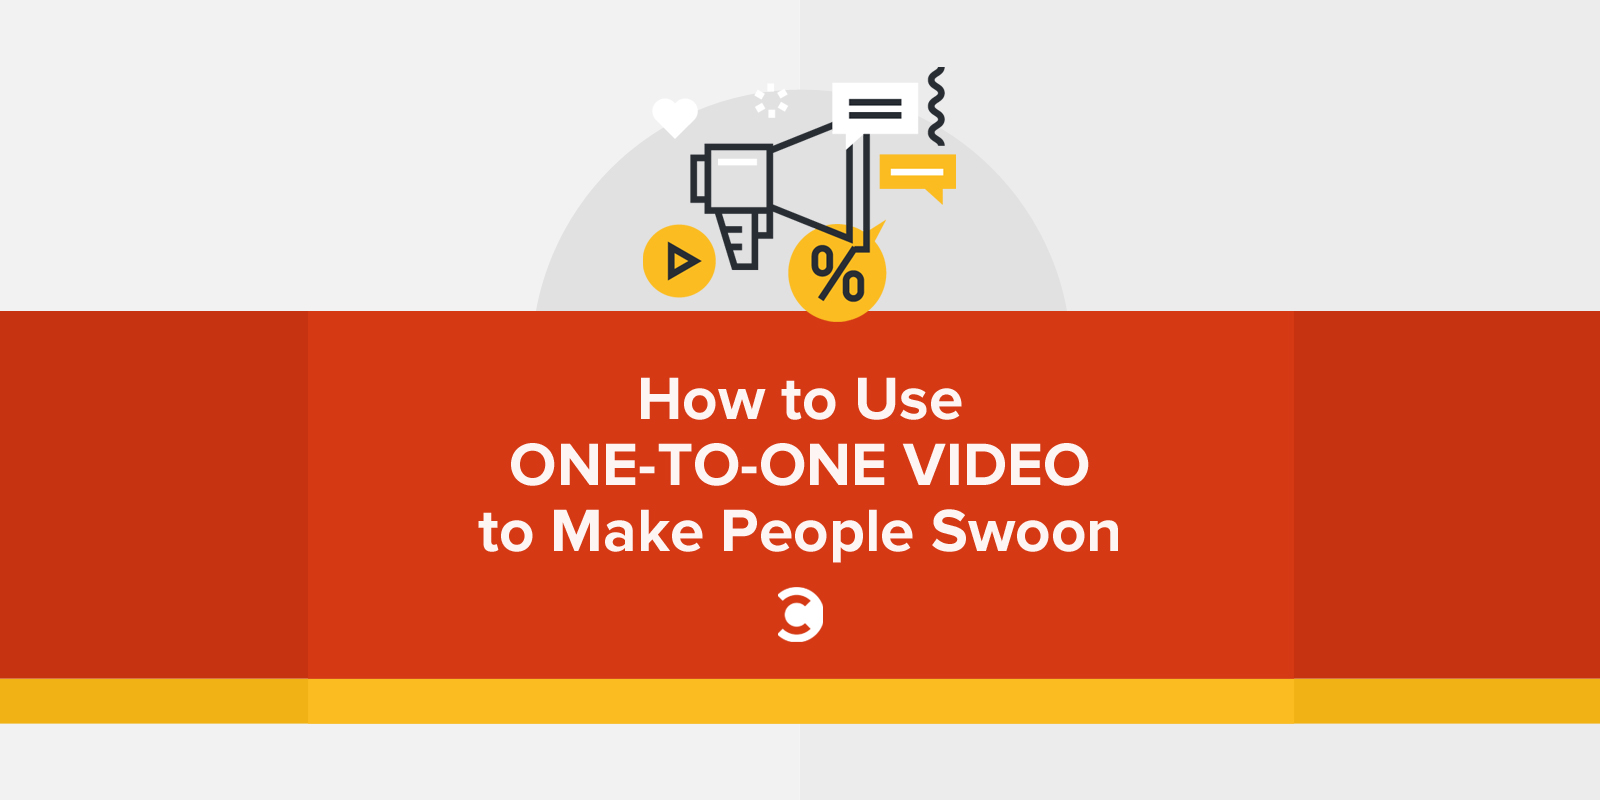 How to Use One-to-One Video to Make People Swoon